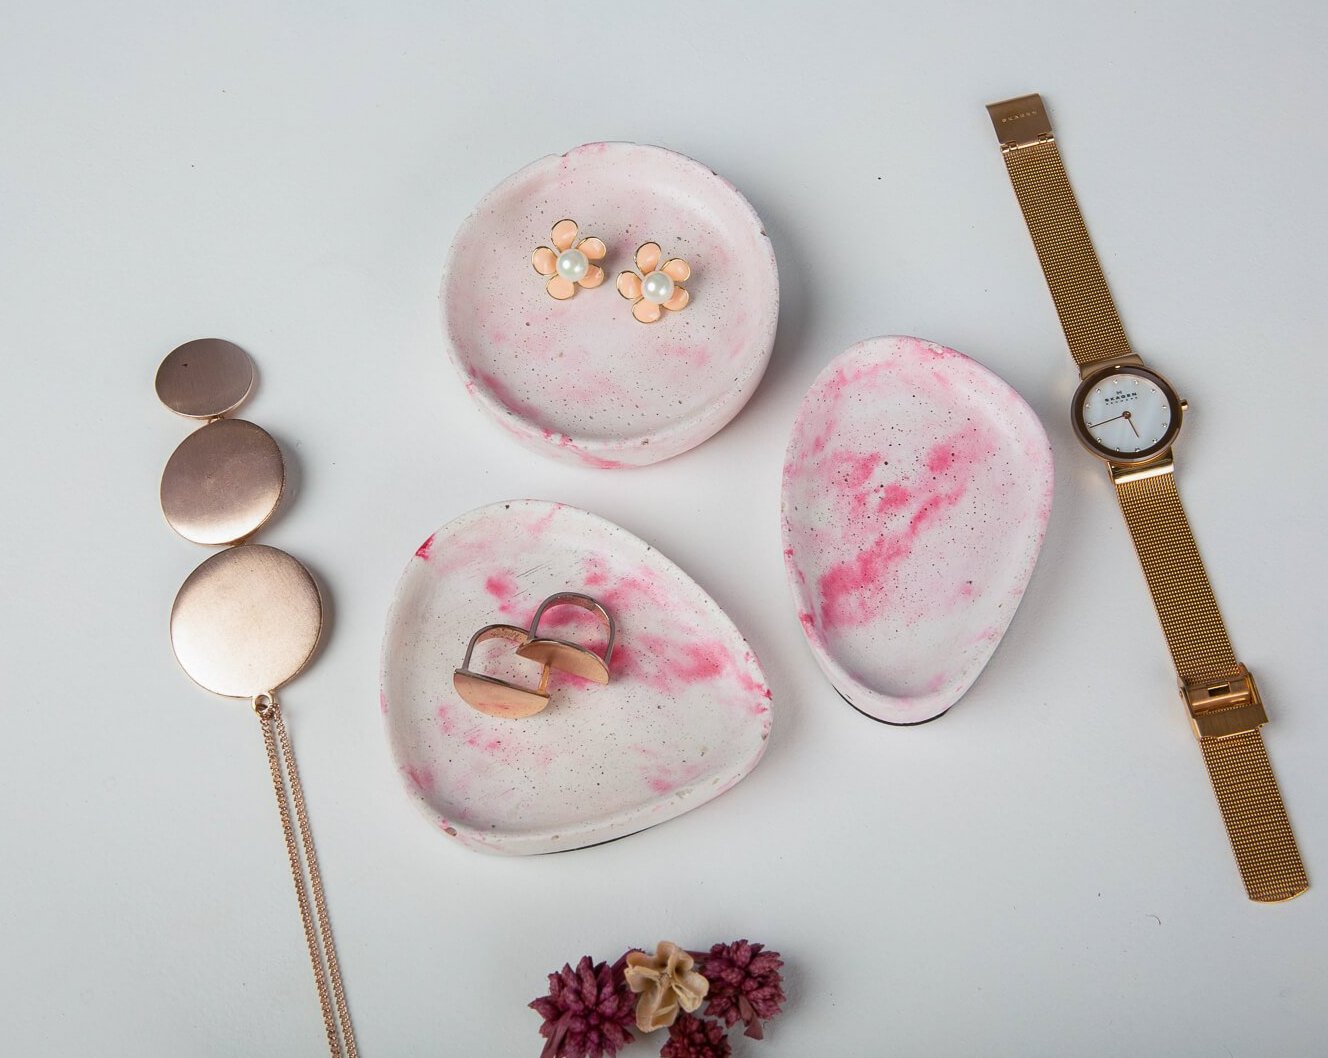 Concrete Pastel Halo Trinket Dish Set - Pink-White-Eliteearth